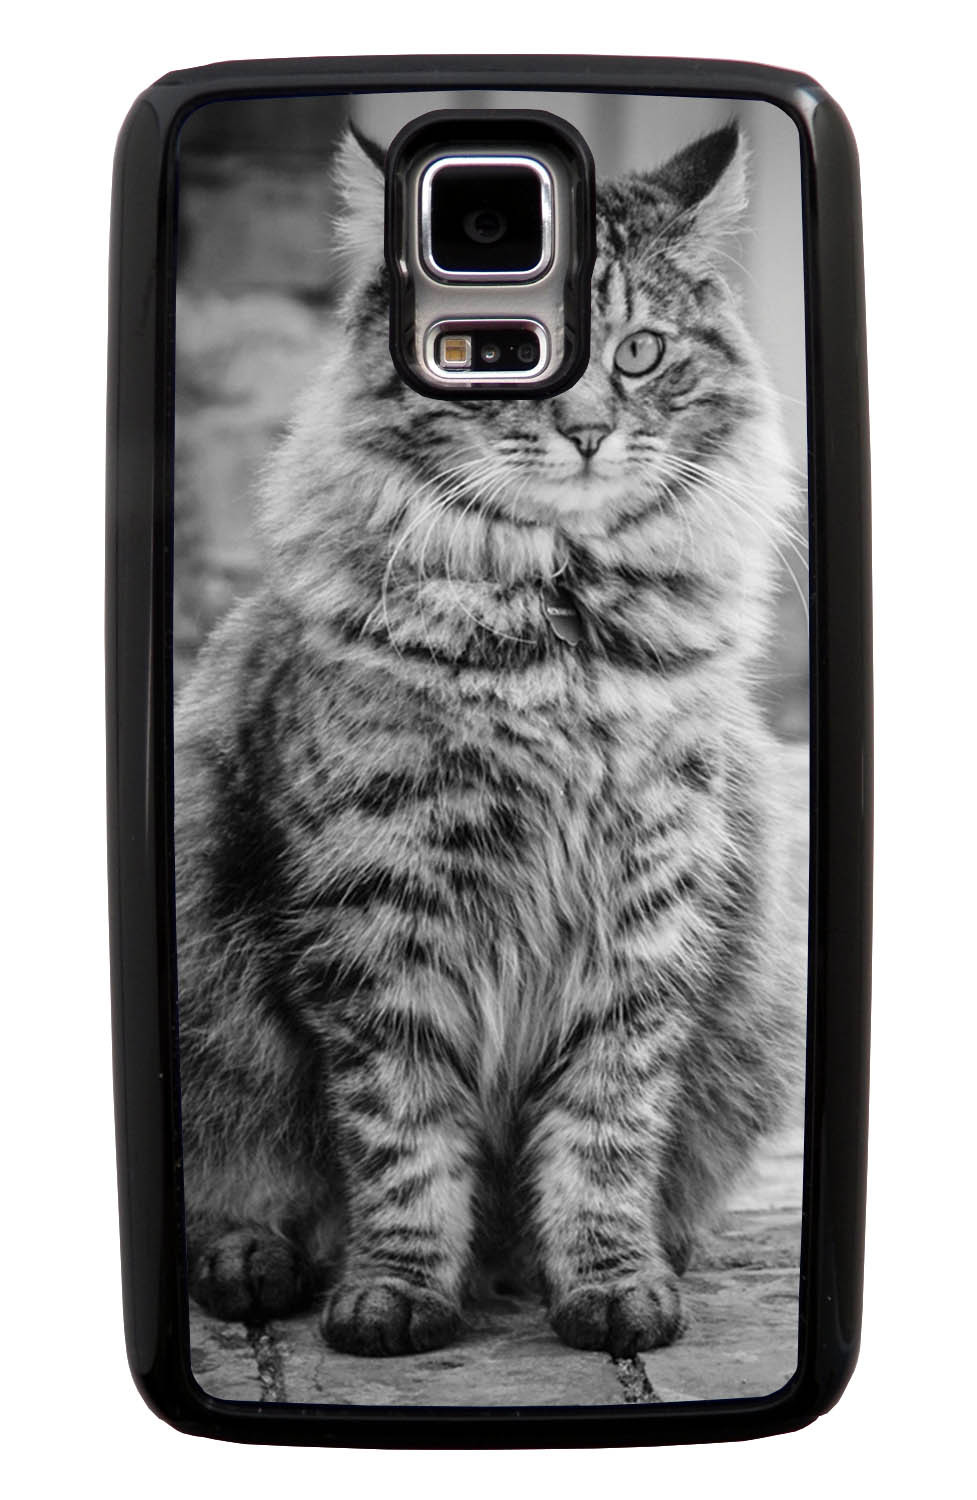 Samsung Galaxy S5 / SV Cat Case - Fur-ball Cat Photo - Cute Pictures - Black Tough Hybrid Case